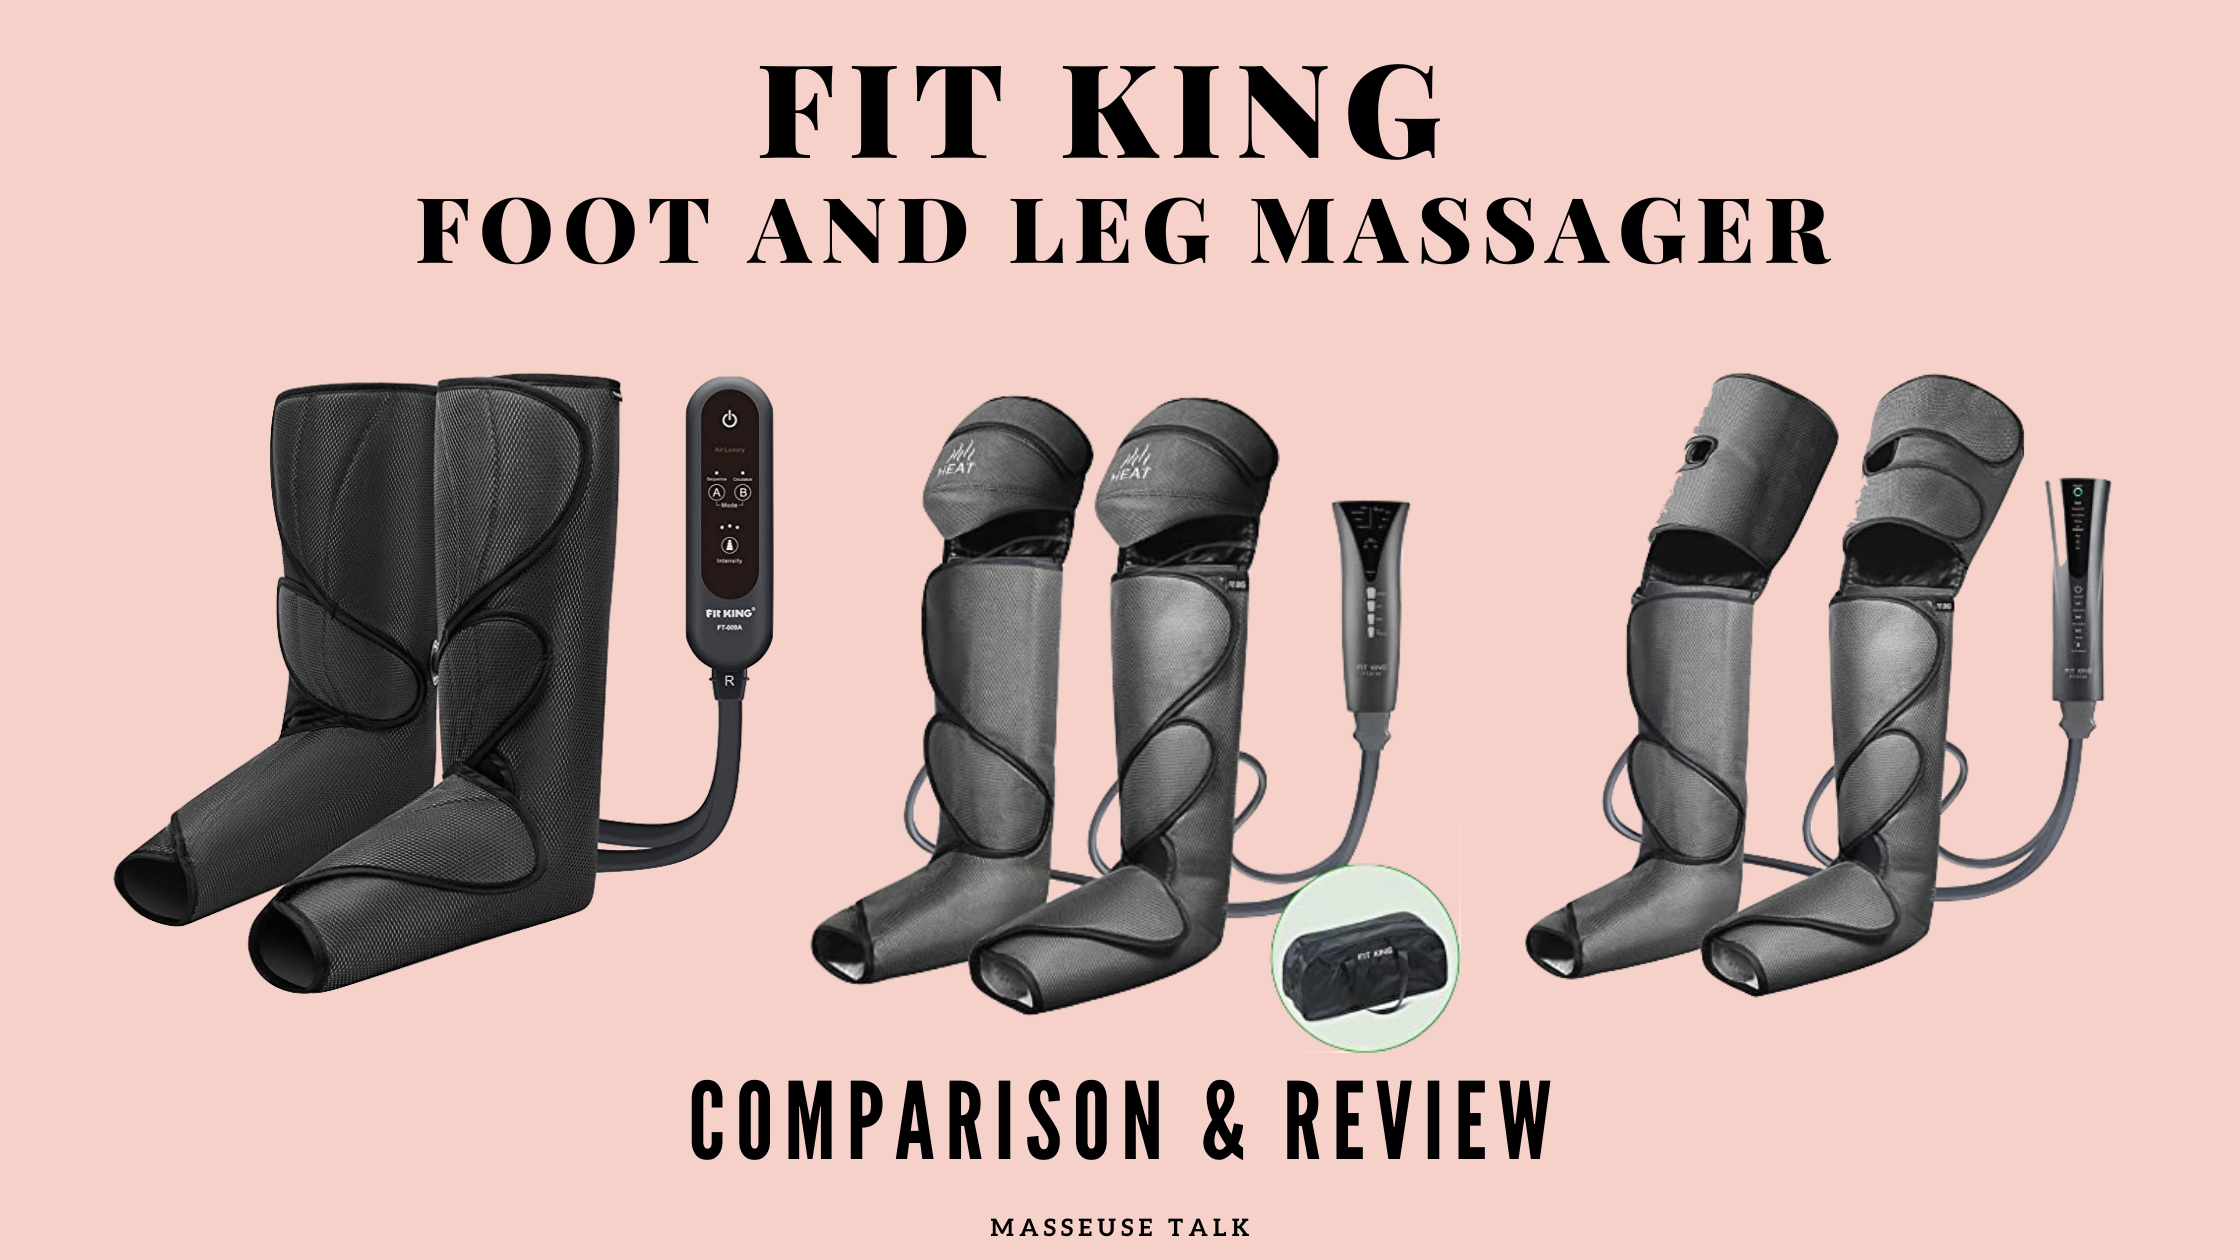 FIT KING Compression Leg Massager